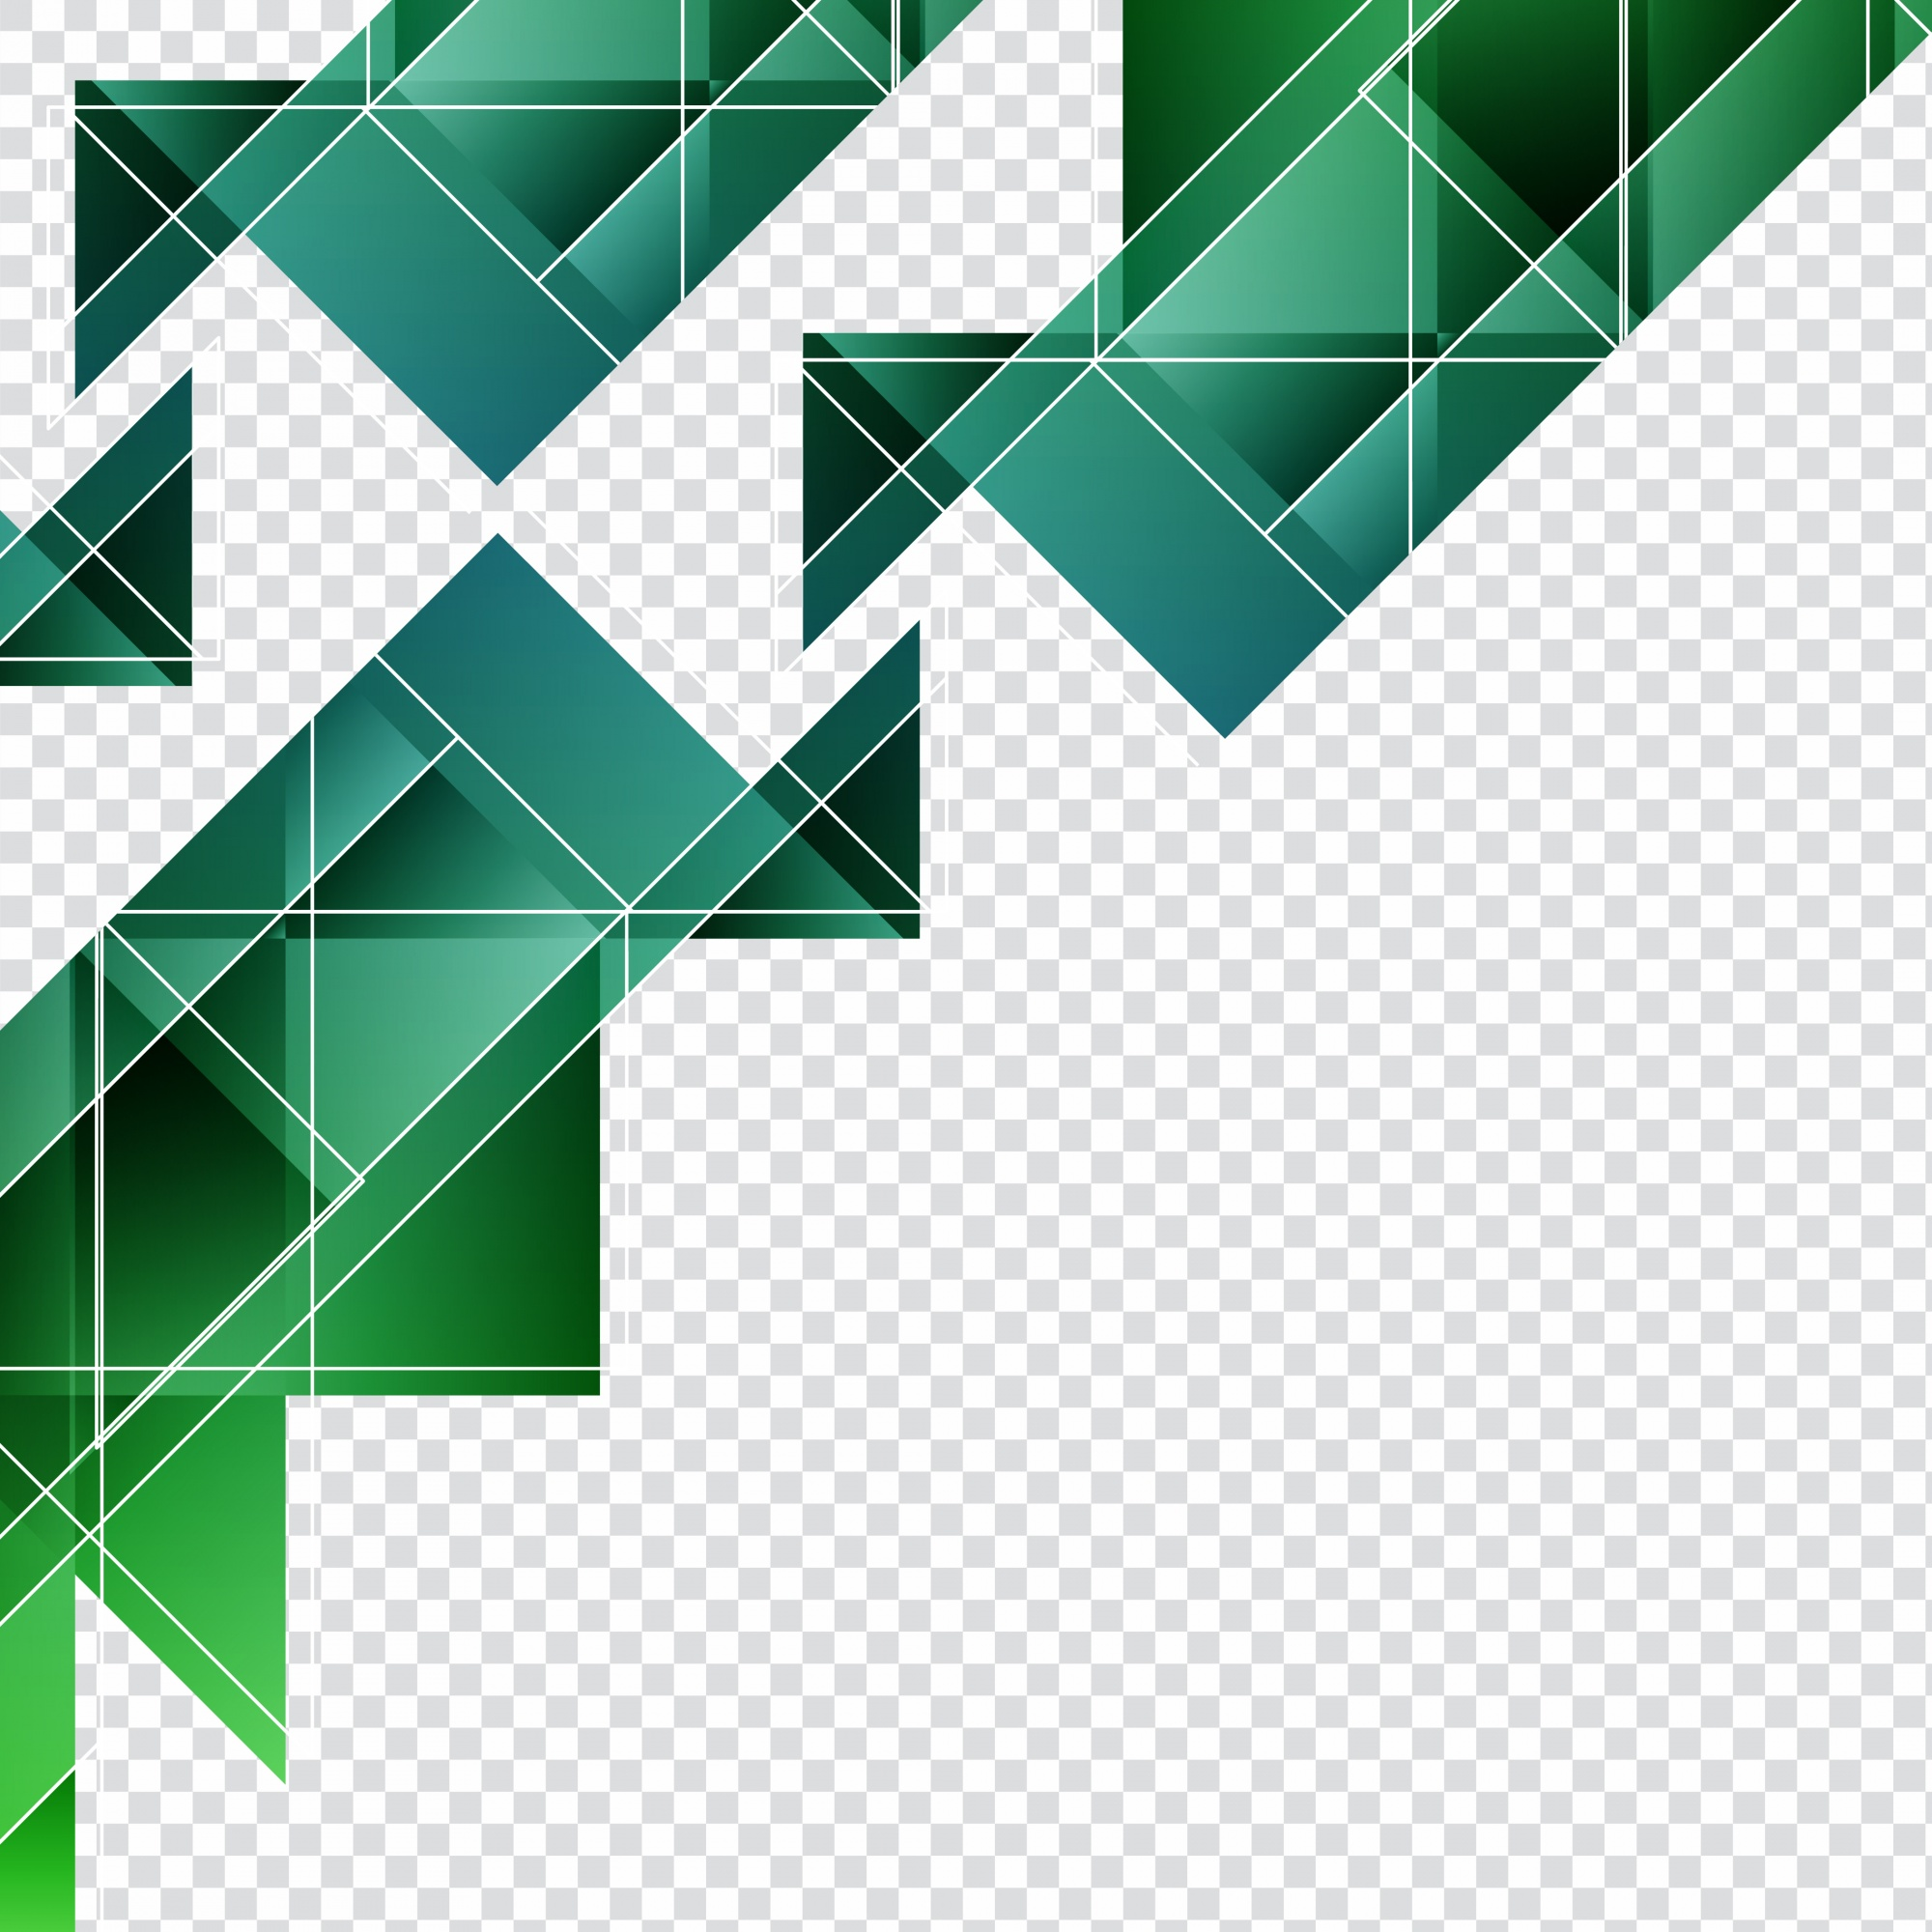 Green geometric shapes for backgrounds